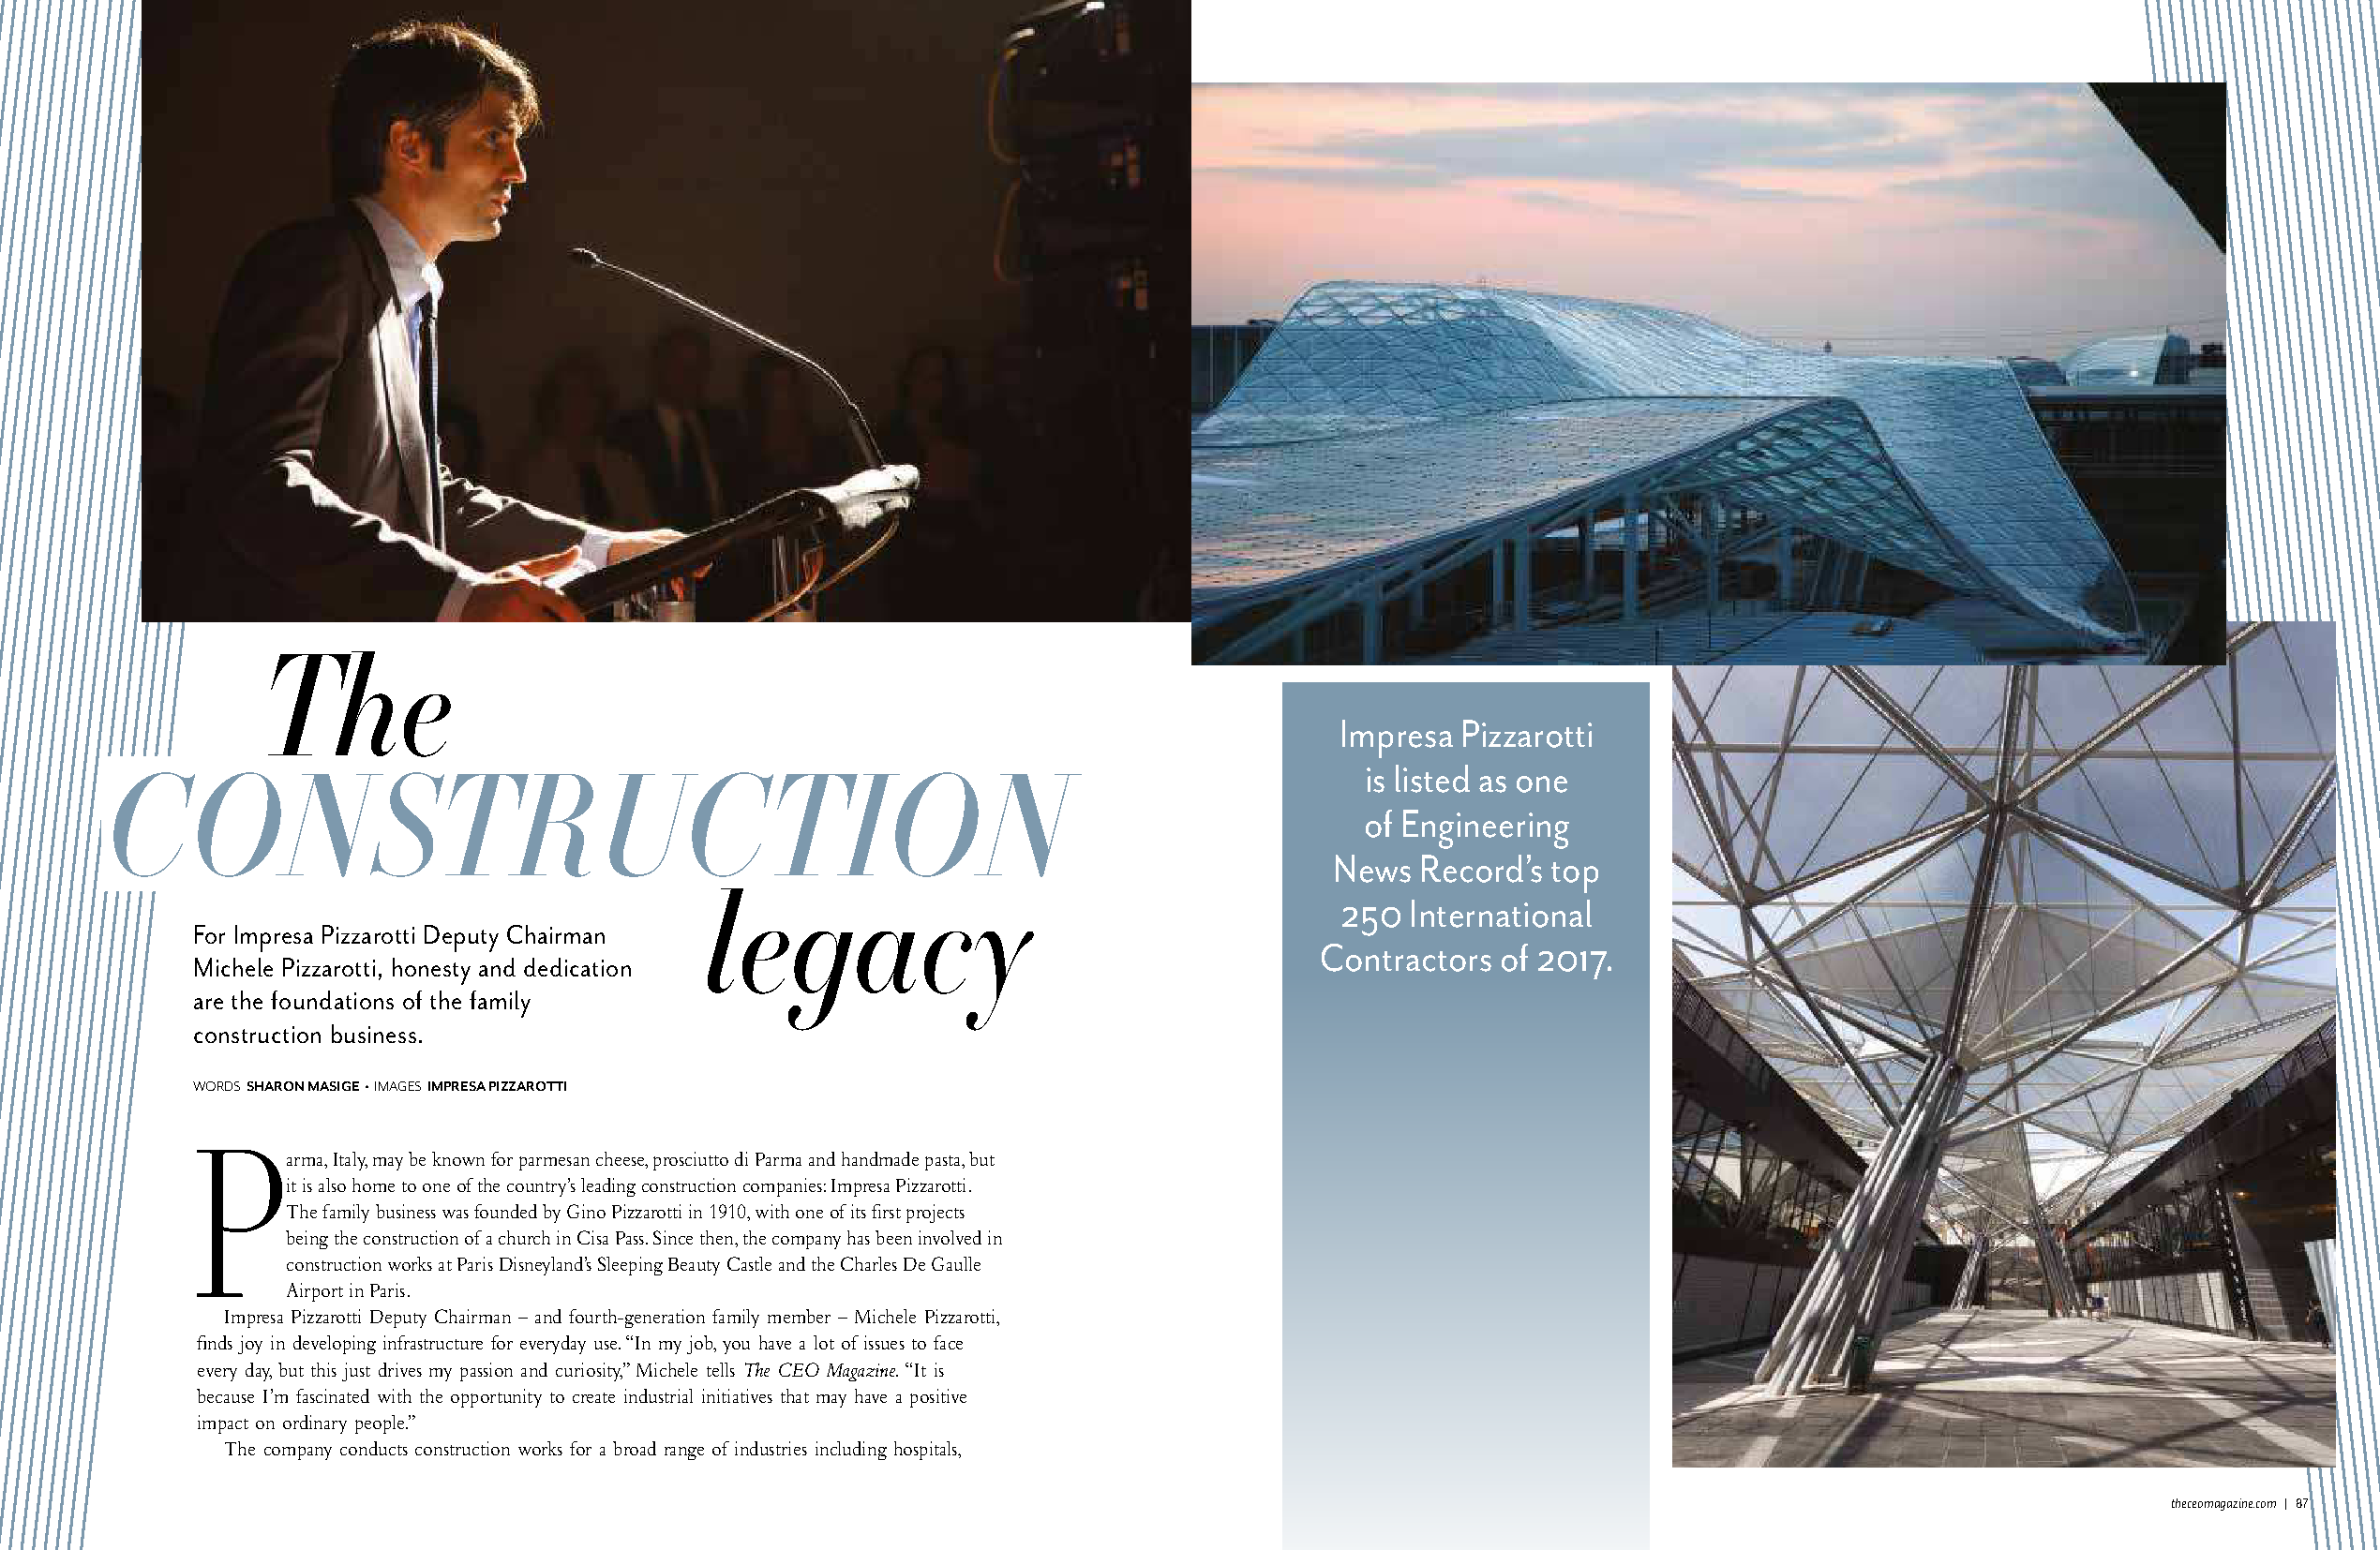 """The construction legacy"